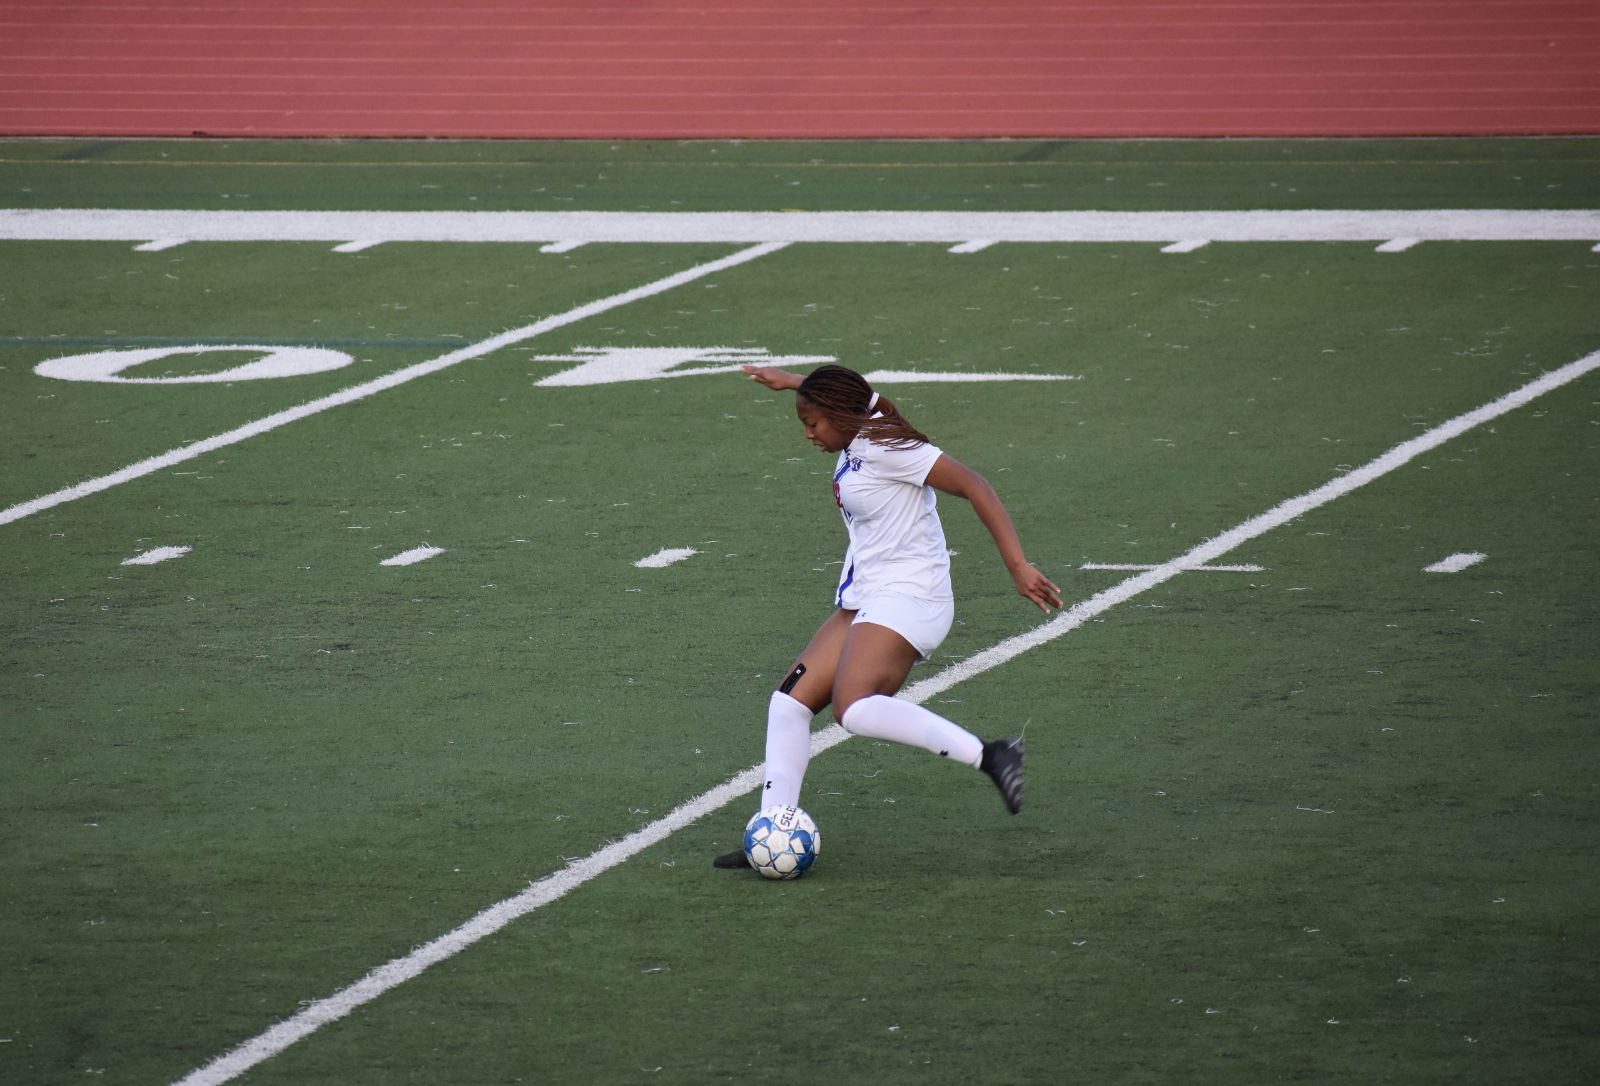 Congratulations to Mackenzie Fredericks – Selected for DiVarsity All-Star Game